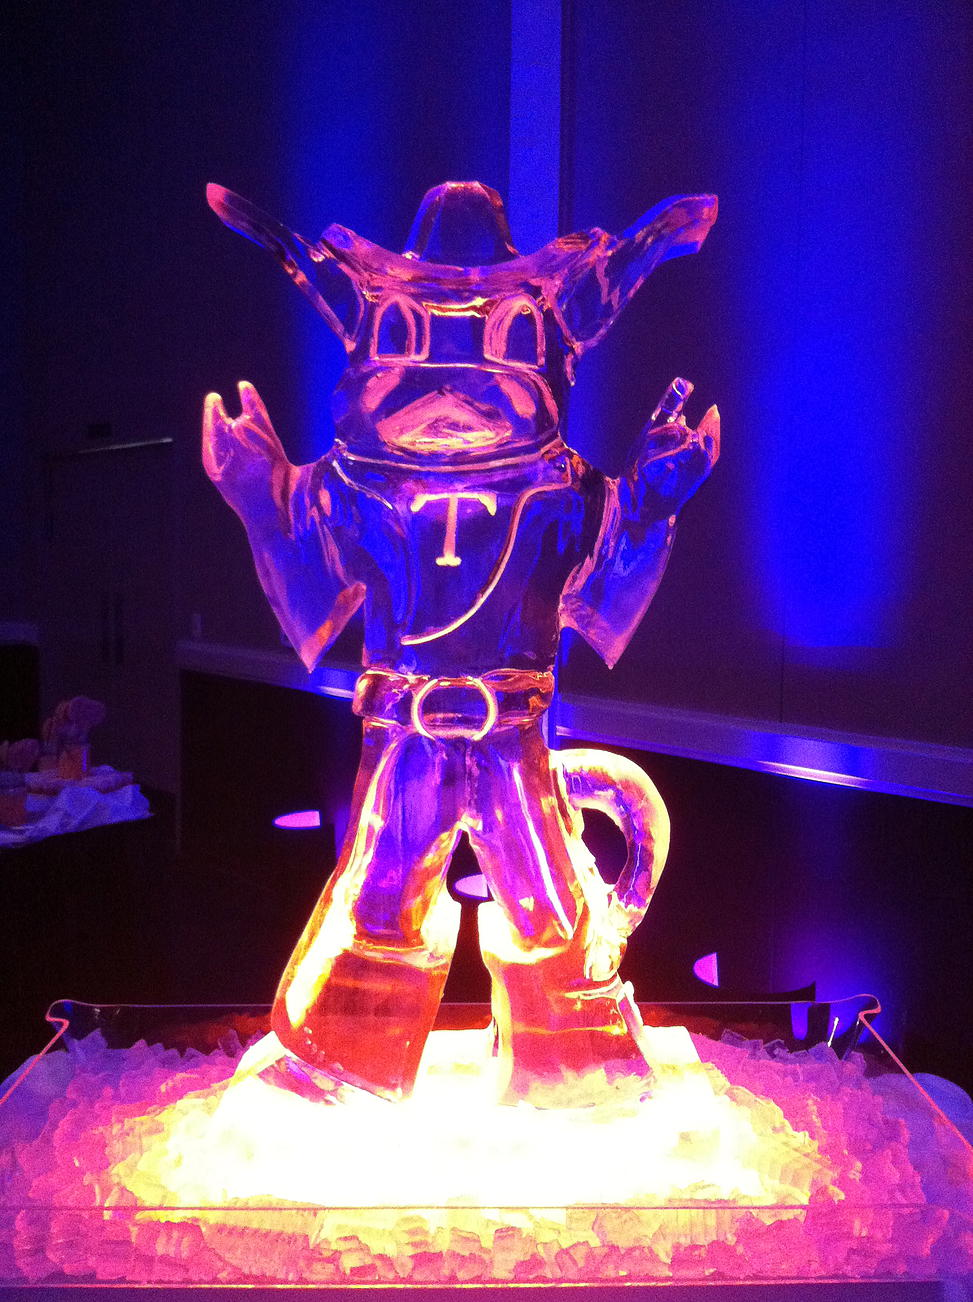 Bevo ice sculpture